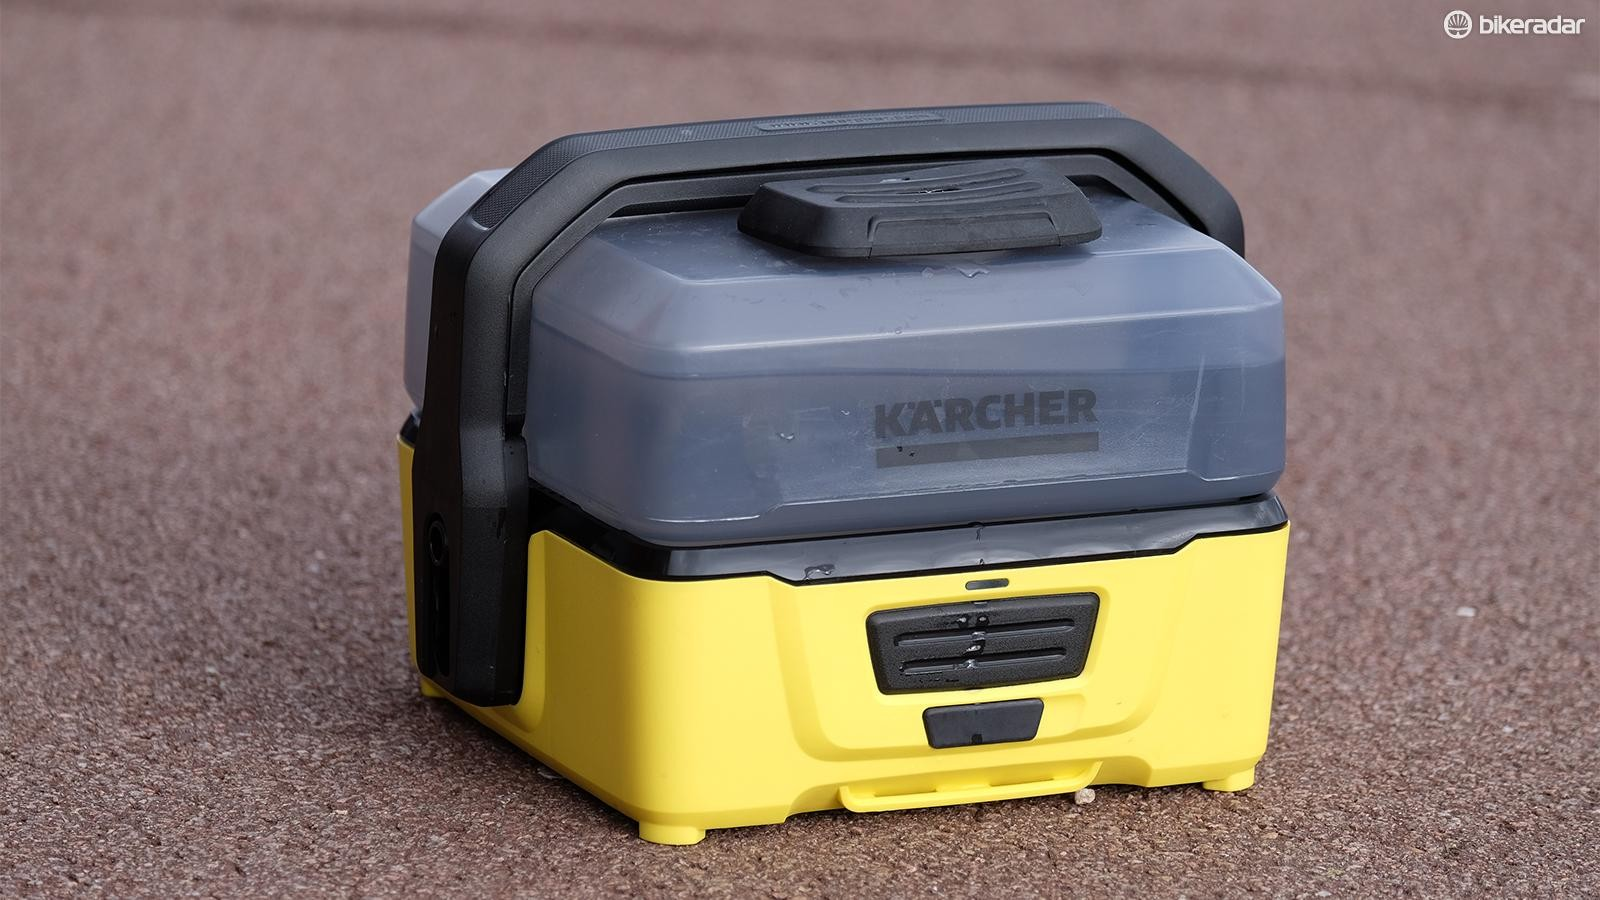 Karcher's dinky, portable pressure washer is powered by lithium batteries